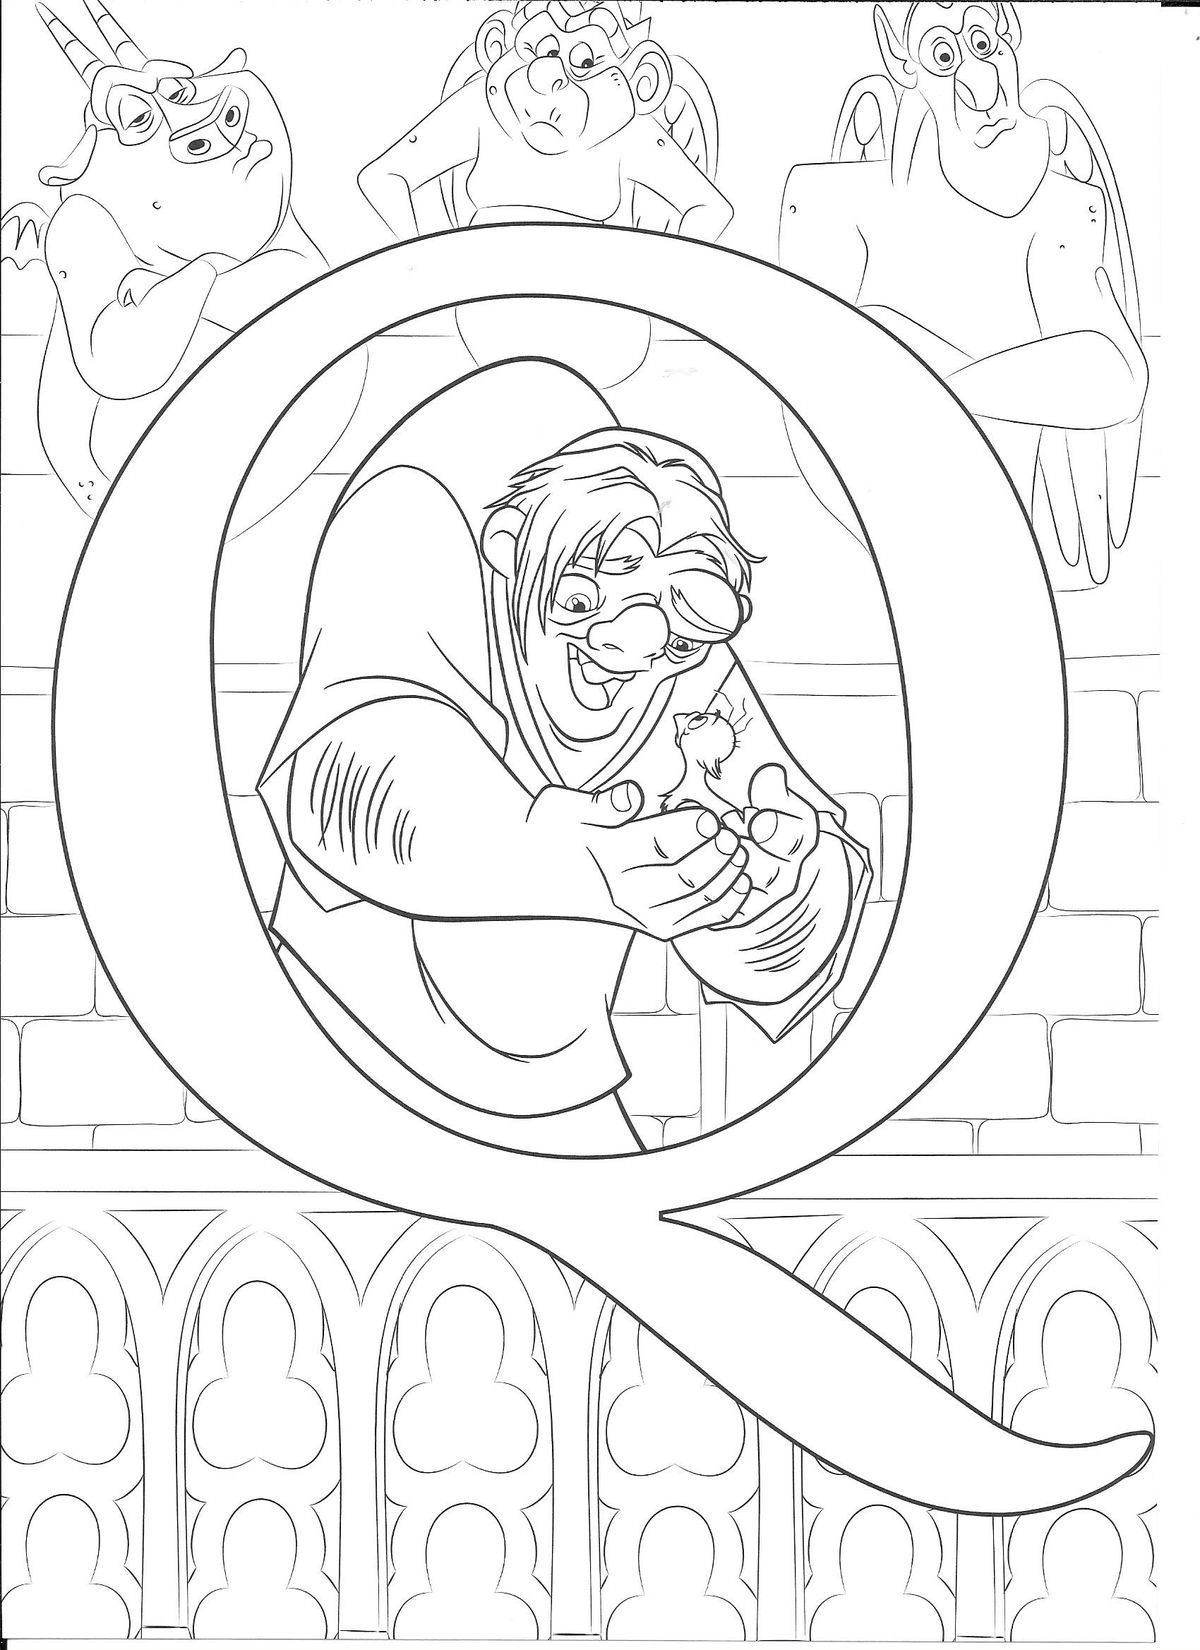 Pin By Mini On Alphabet Coloring Sheets Abc Coloring Pages